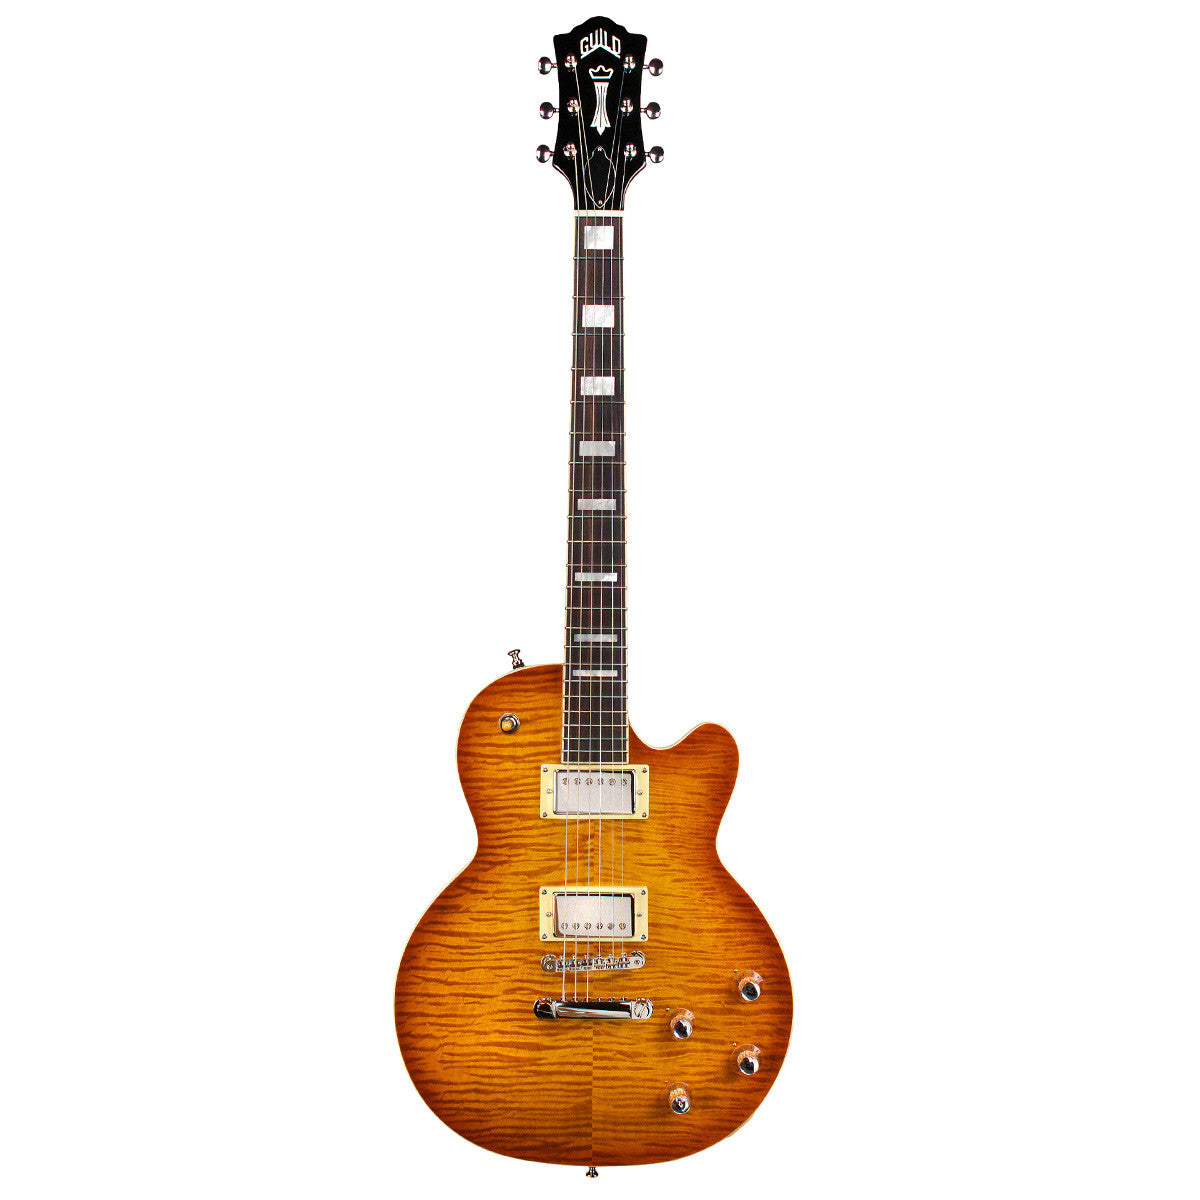 Guild Bluesbird - Iced Tea Burst - Newark St. Collection - Vintage Guitar Boutique - 2